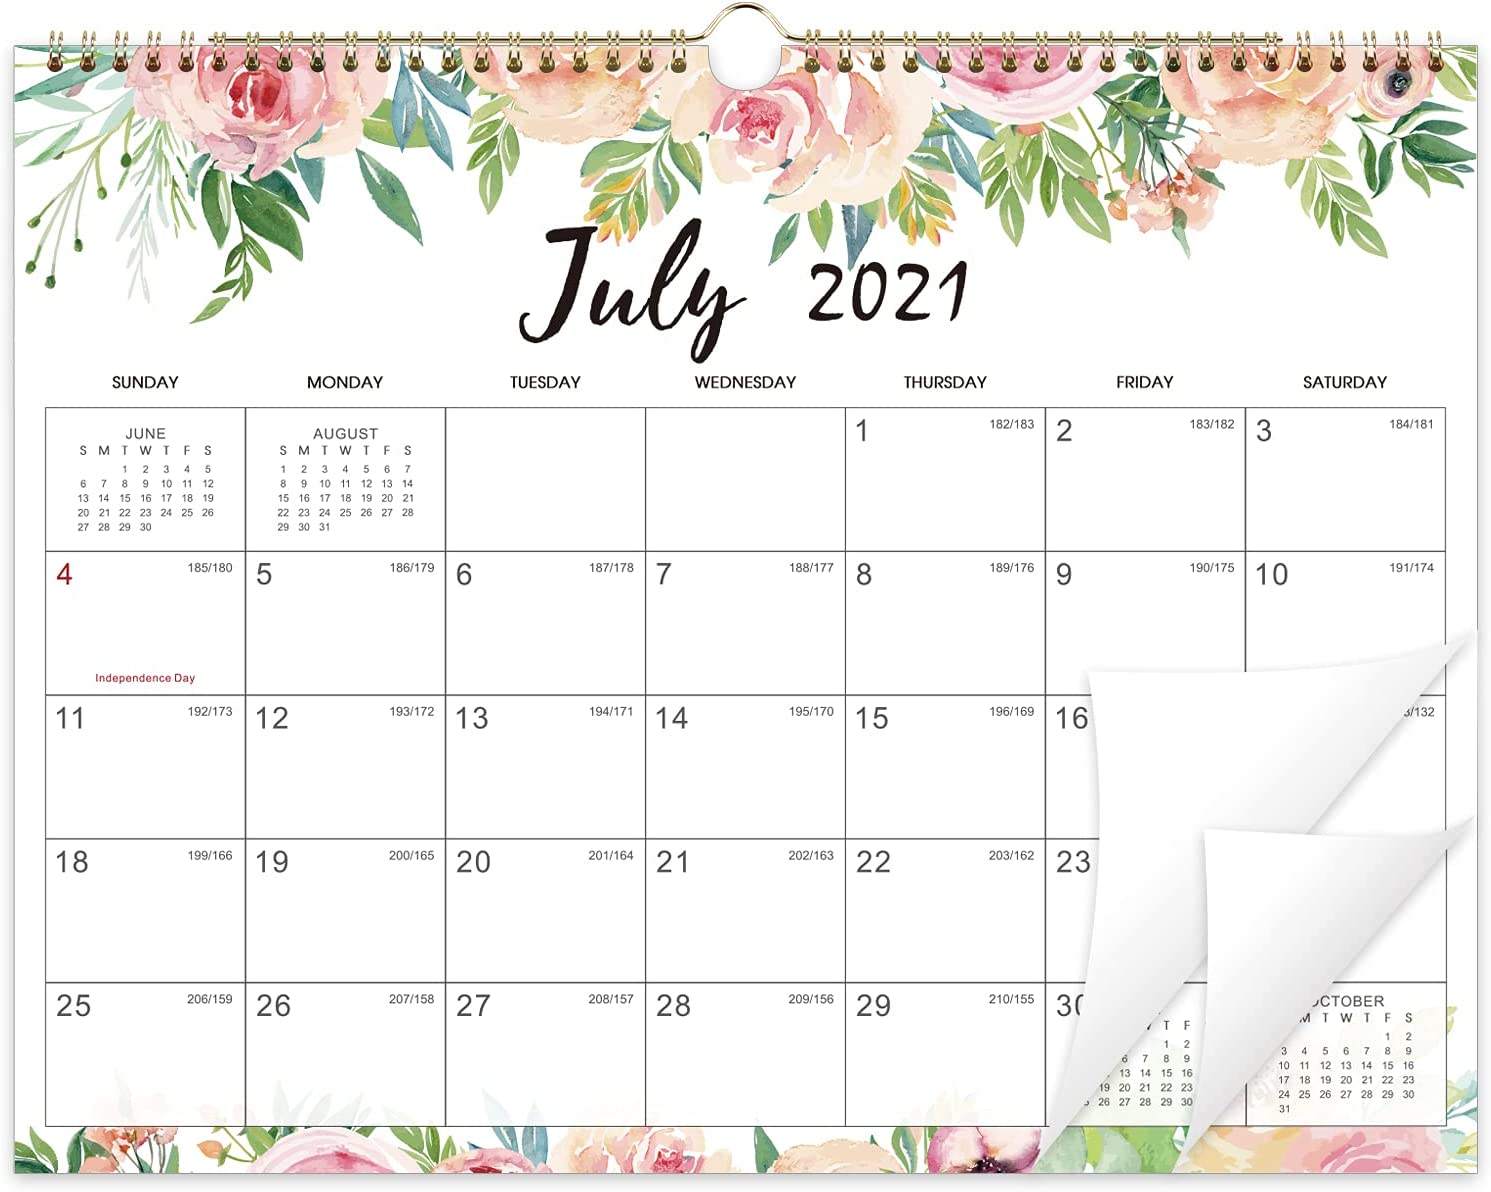 Large Wall Calendar 2022.Amazon Com 2021 2022 Wall Calendar 18 Months Large Monthly Wall Calendar July 2021 Dec 2022 14 6 X 11 4 Large Ruled Blocks To Do List Notes Best Wall Calendar For Organizing Office Products